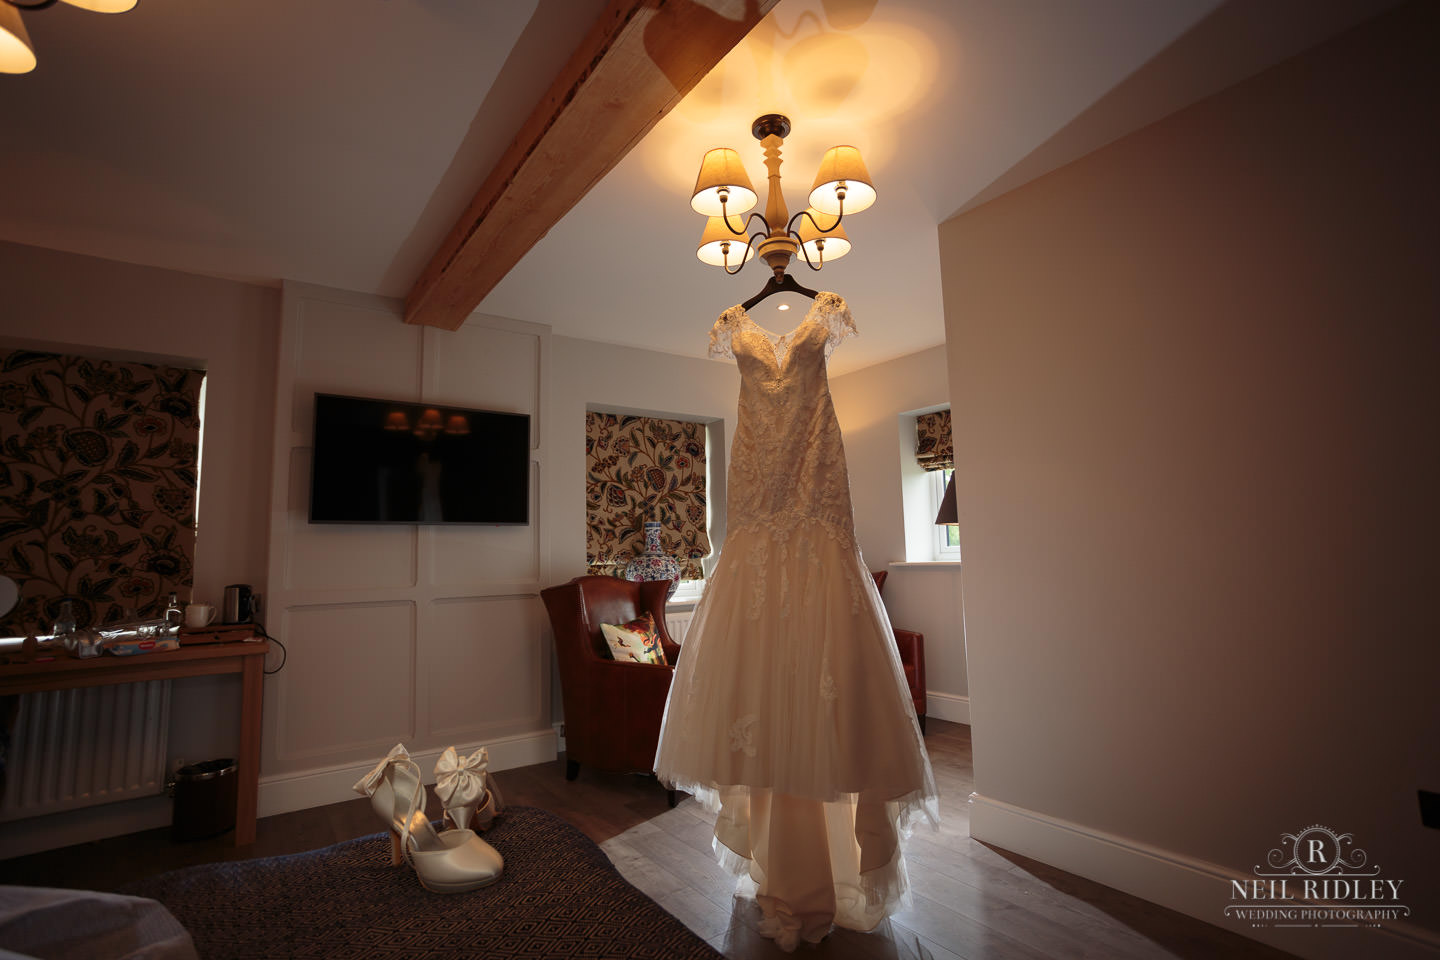 Wedding Dress hung up in the Bridal Suite during Bridal Prep at The Mill at Conder Green